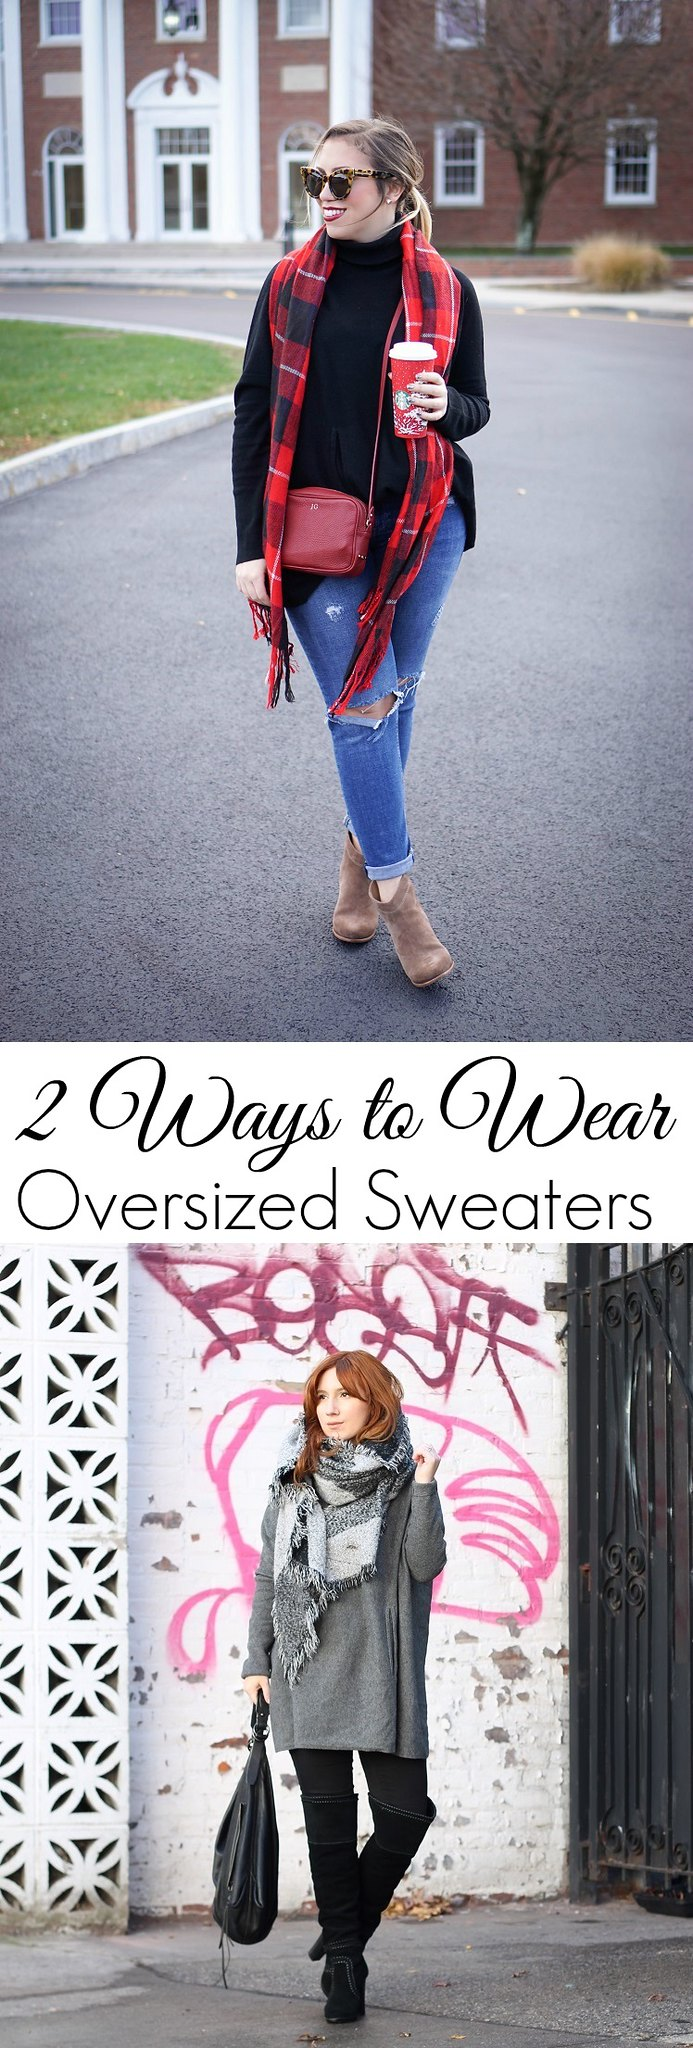 2 Ways to Wear Oversized Sweaters